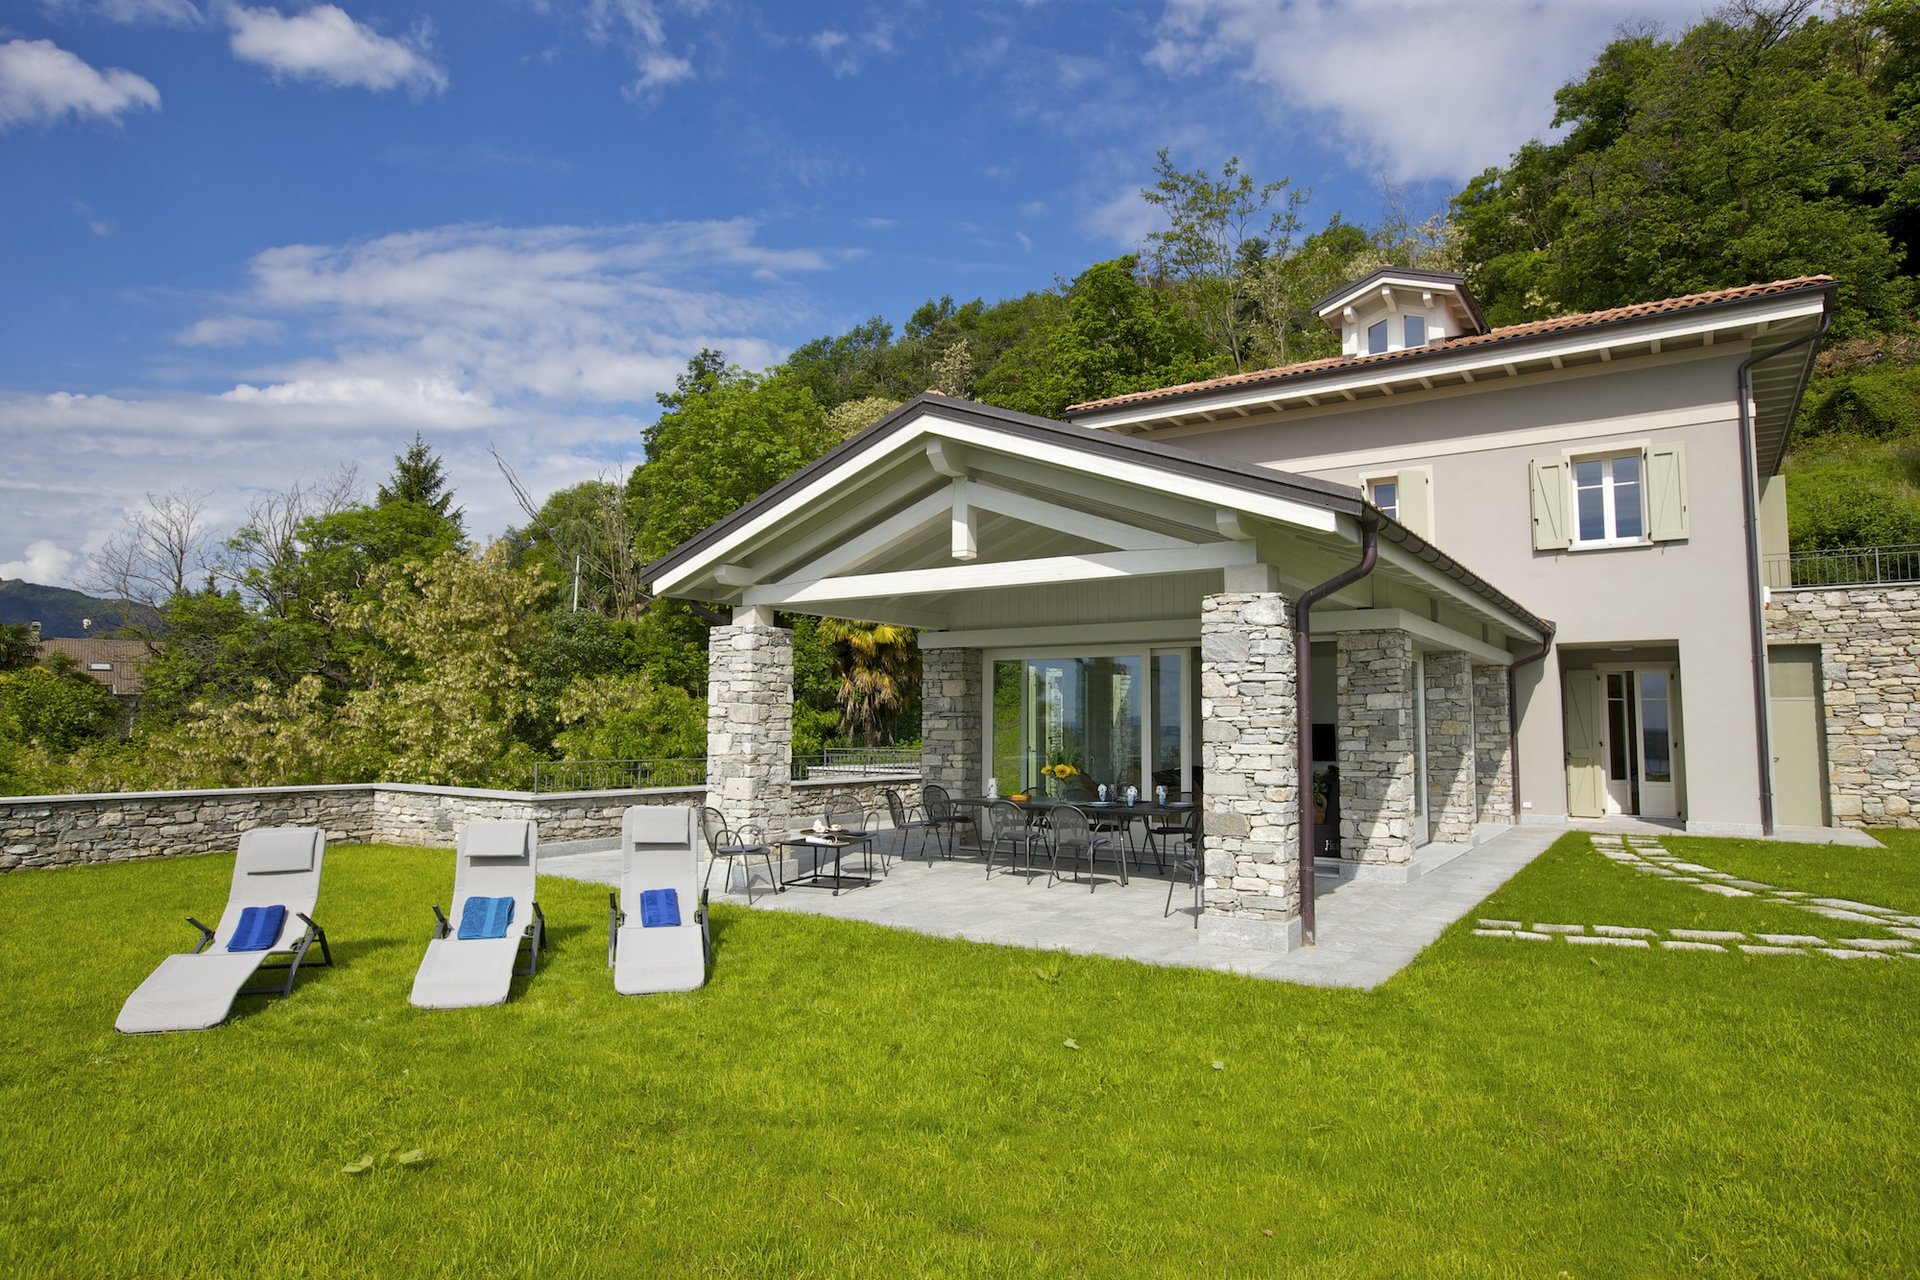 Luxury new villa for sale in Verbania - patio